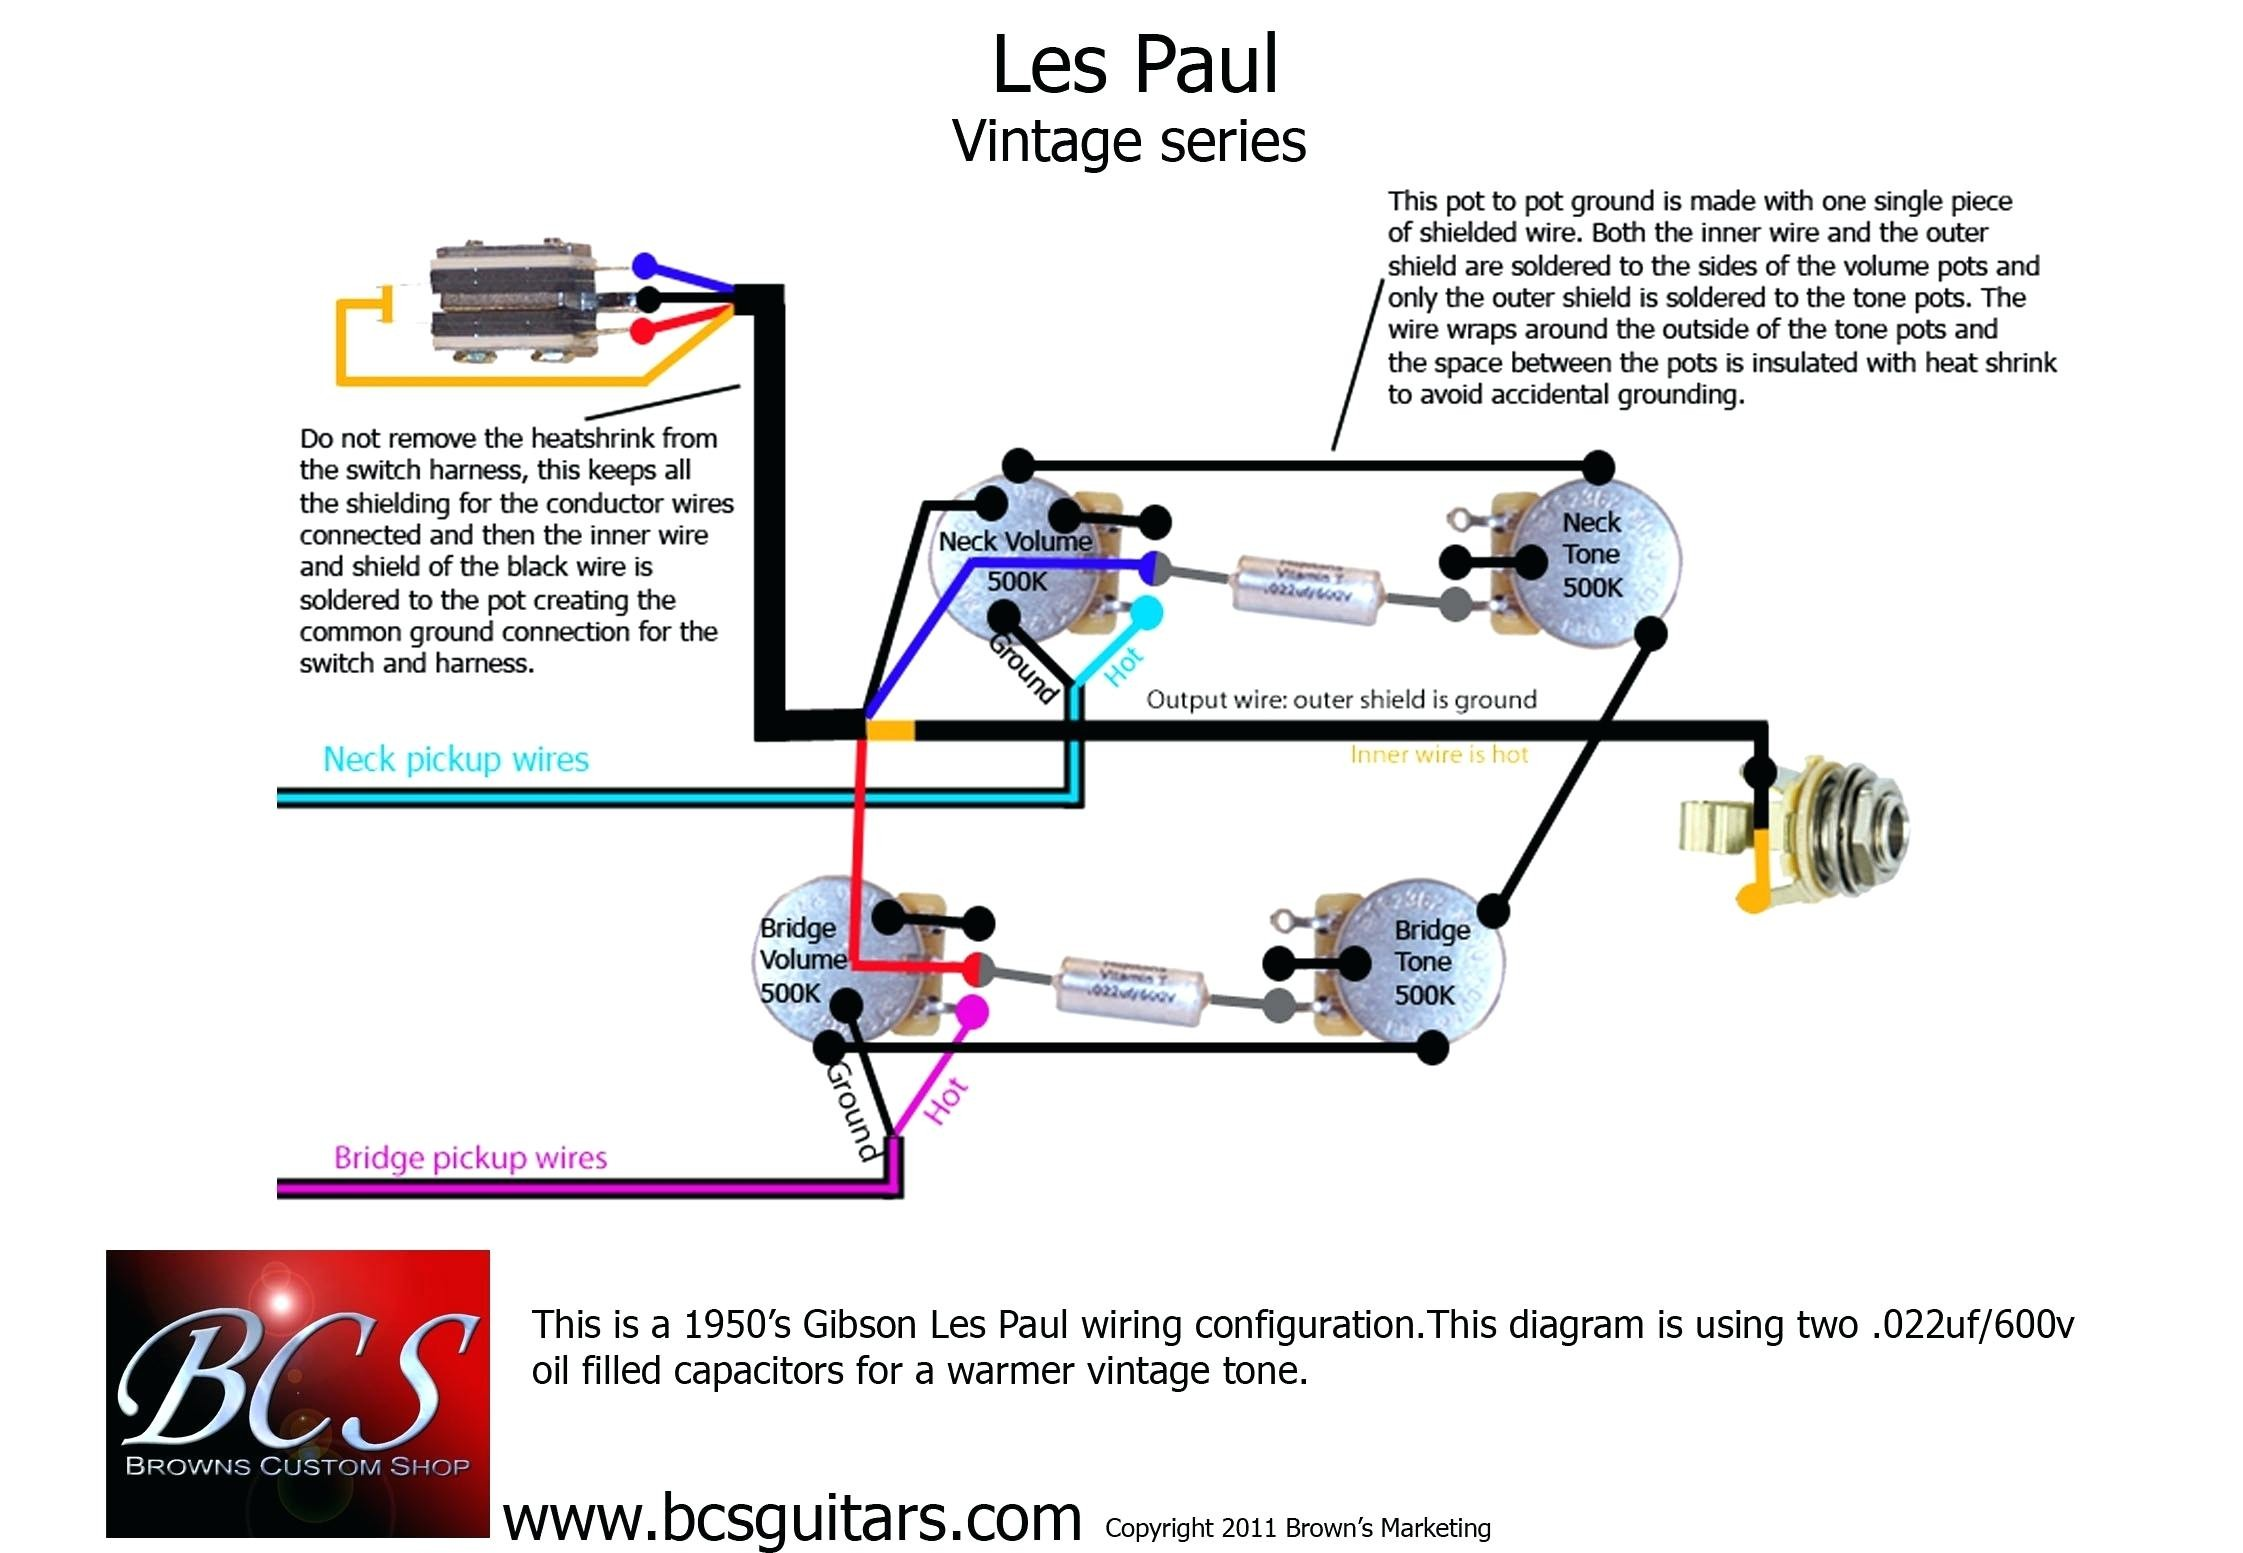 50s Les Paul Wiring Diagram Les Paul Wiring Diagram Schematic Seymour Duncan Kit Standard Of 50s Les Paul Wiring Diagram